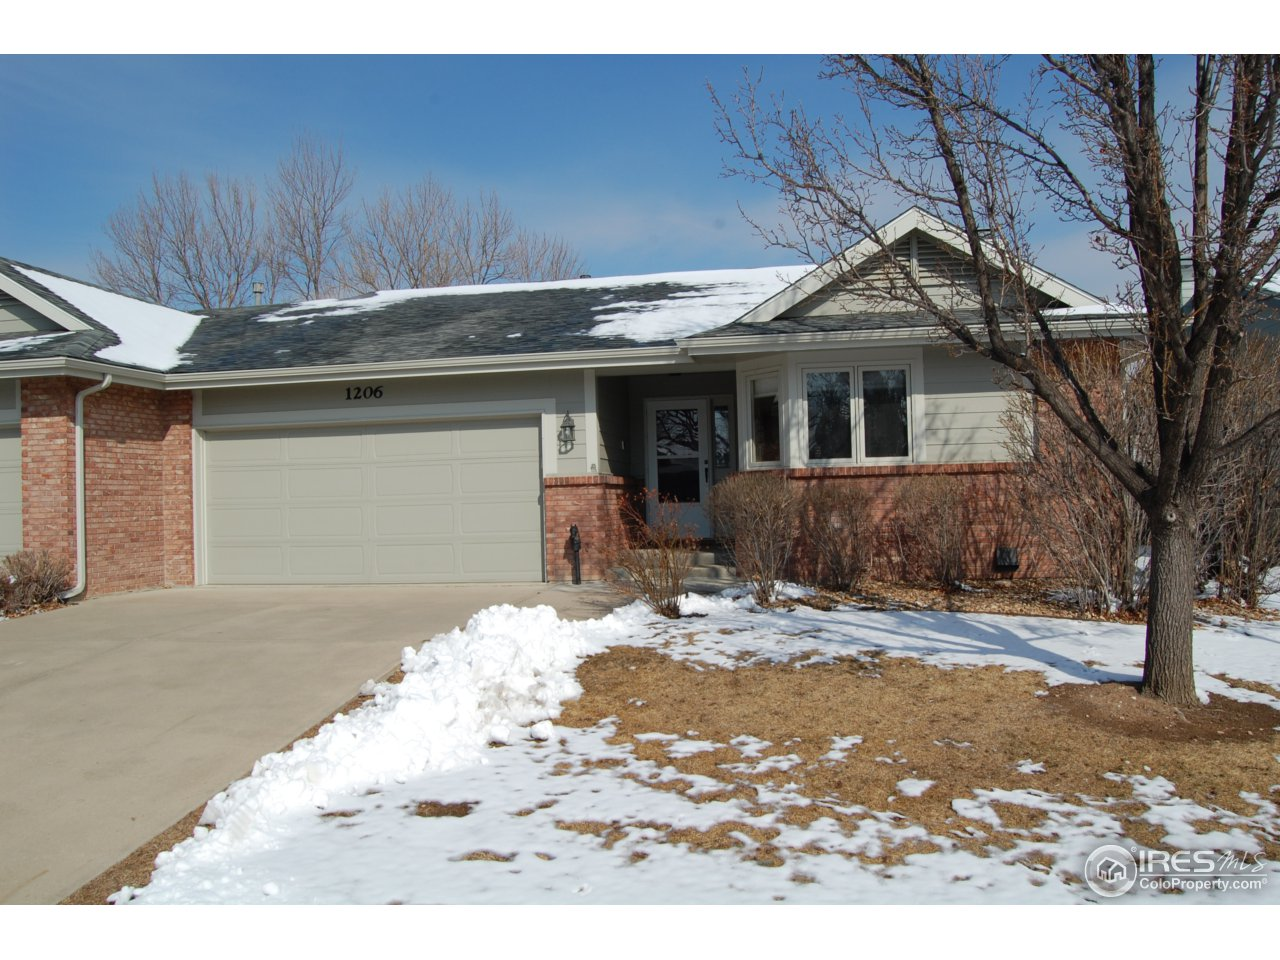 1206 Silk Oak Ct, Fort Collins CO 80525